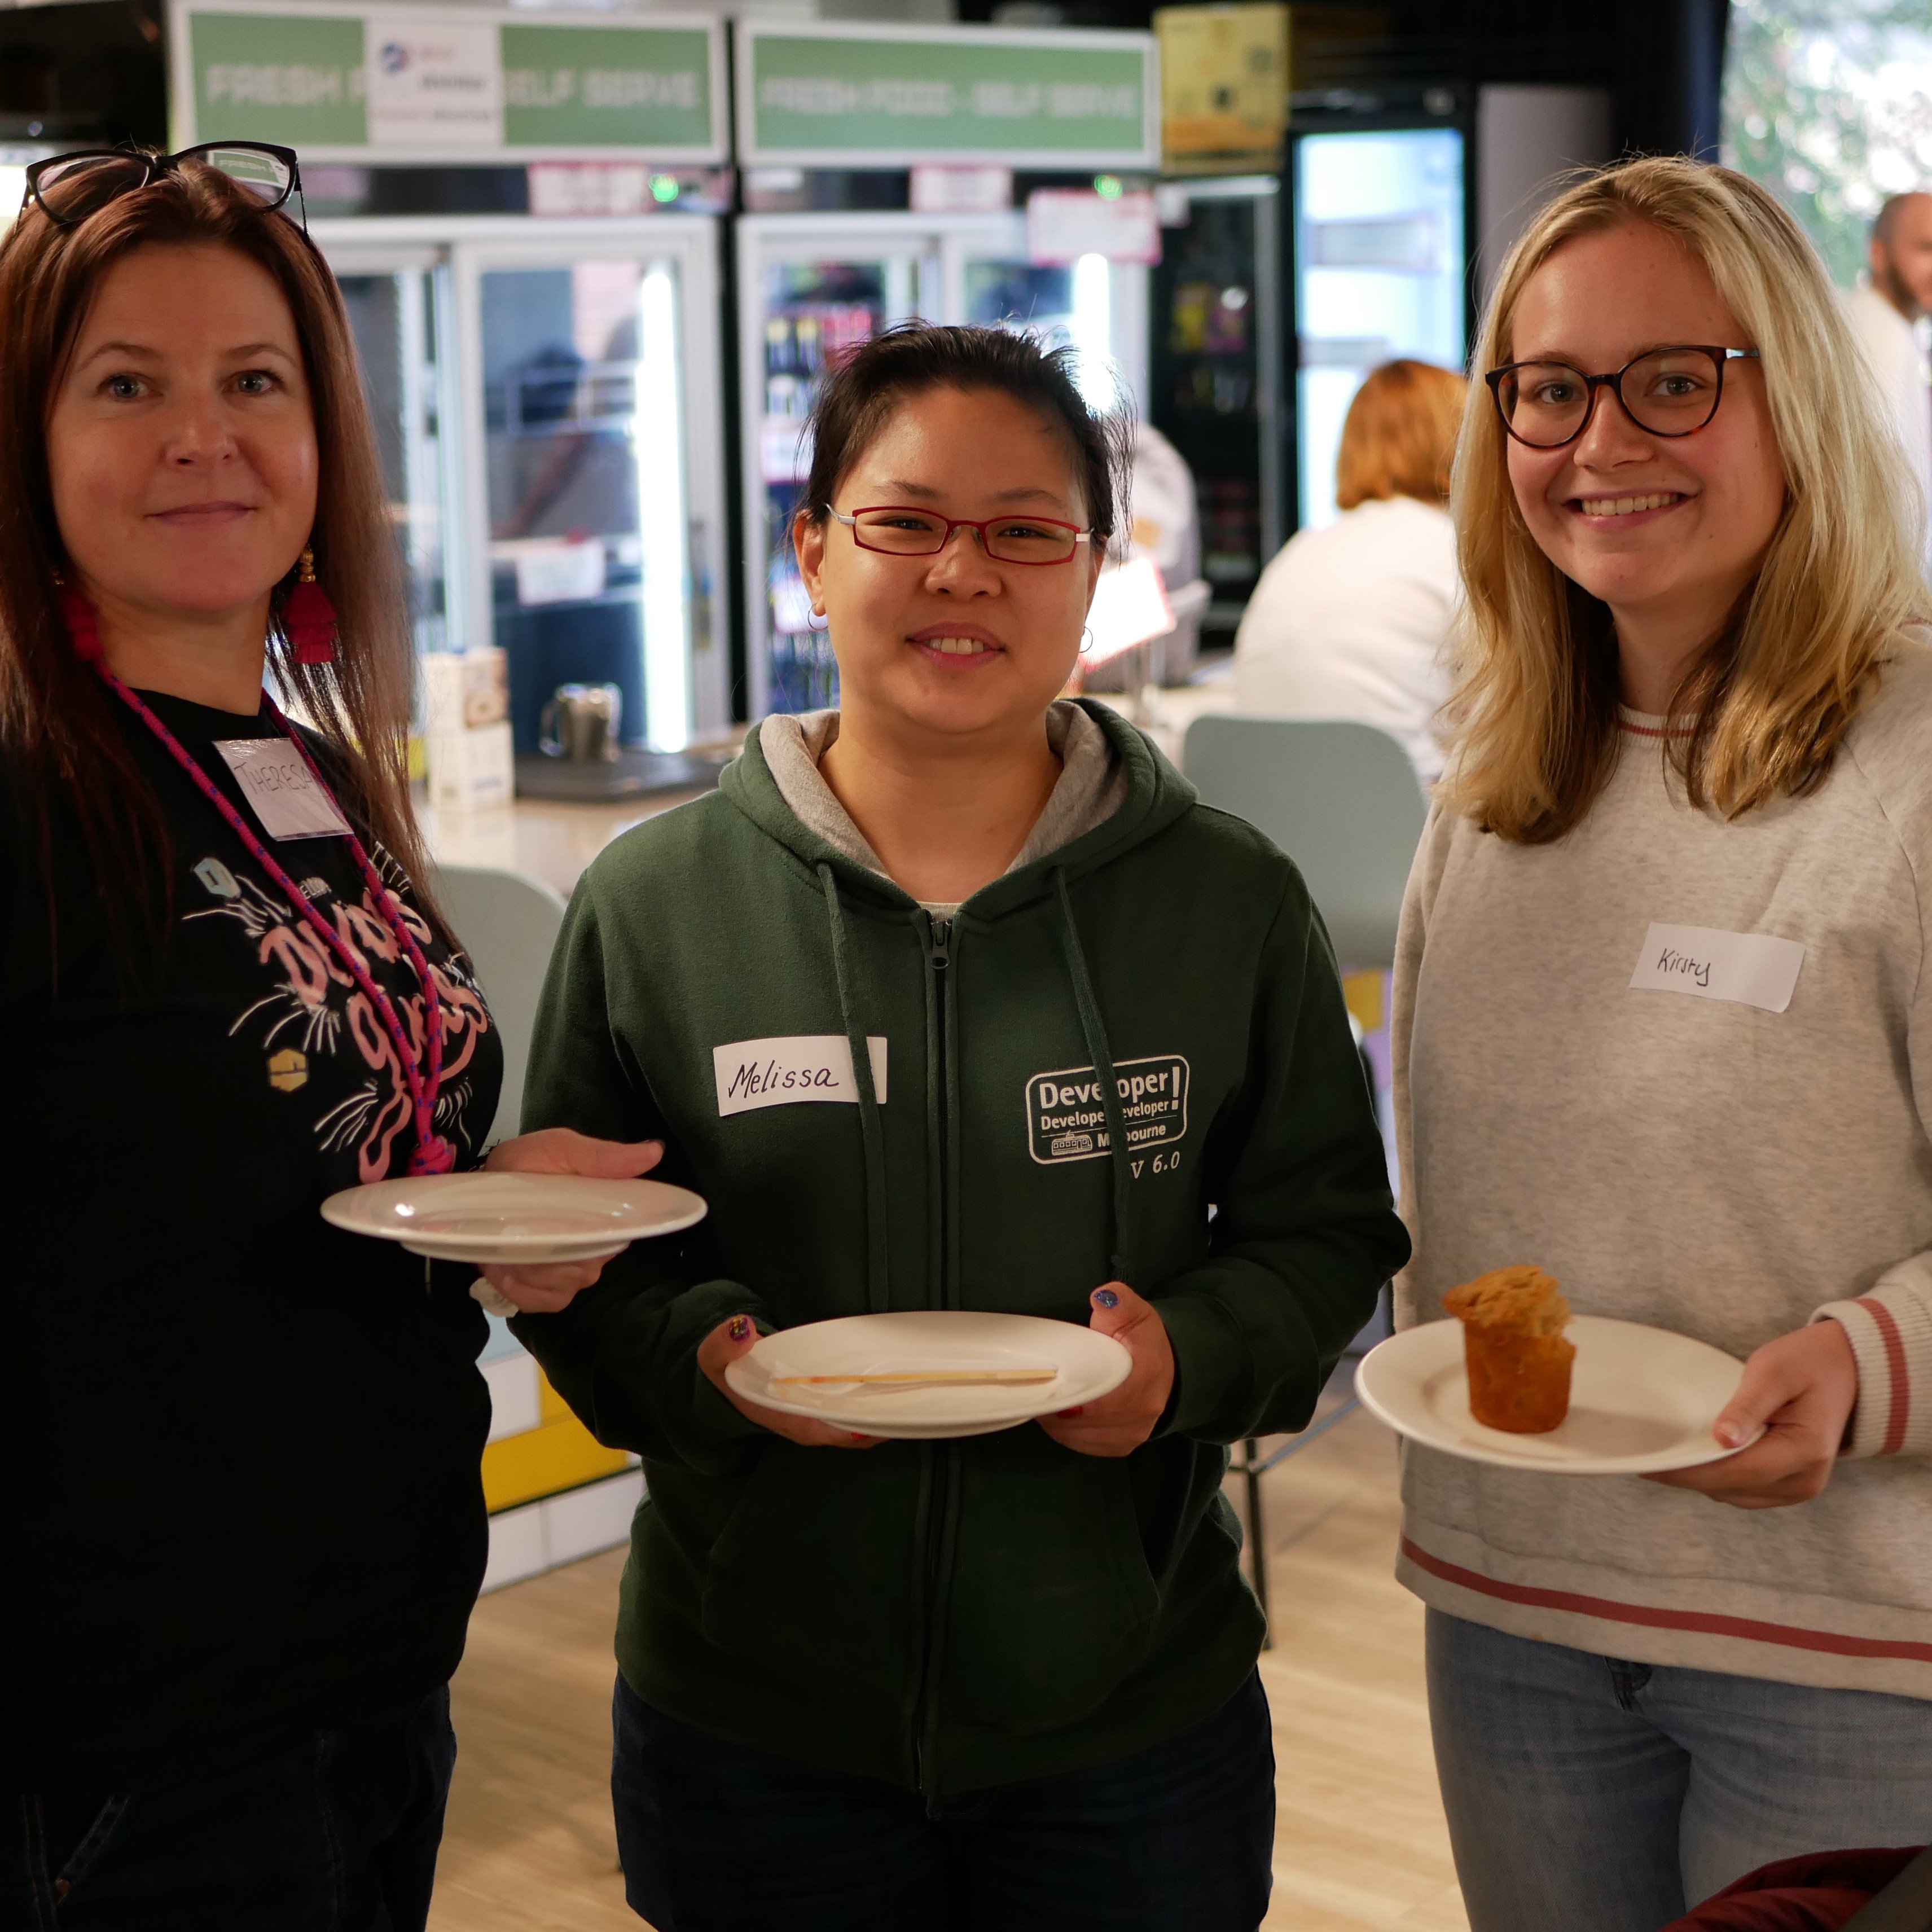 Three women are standing and holding plates with some food, smiling at the camera.